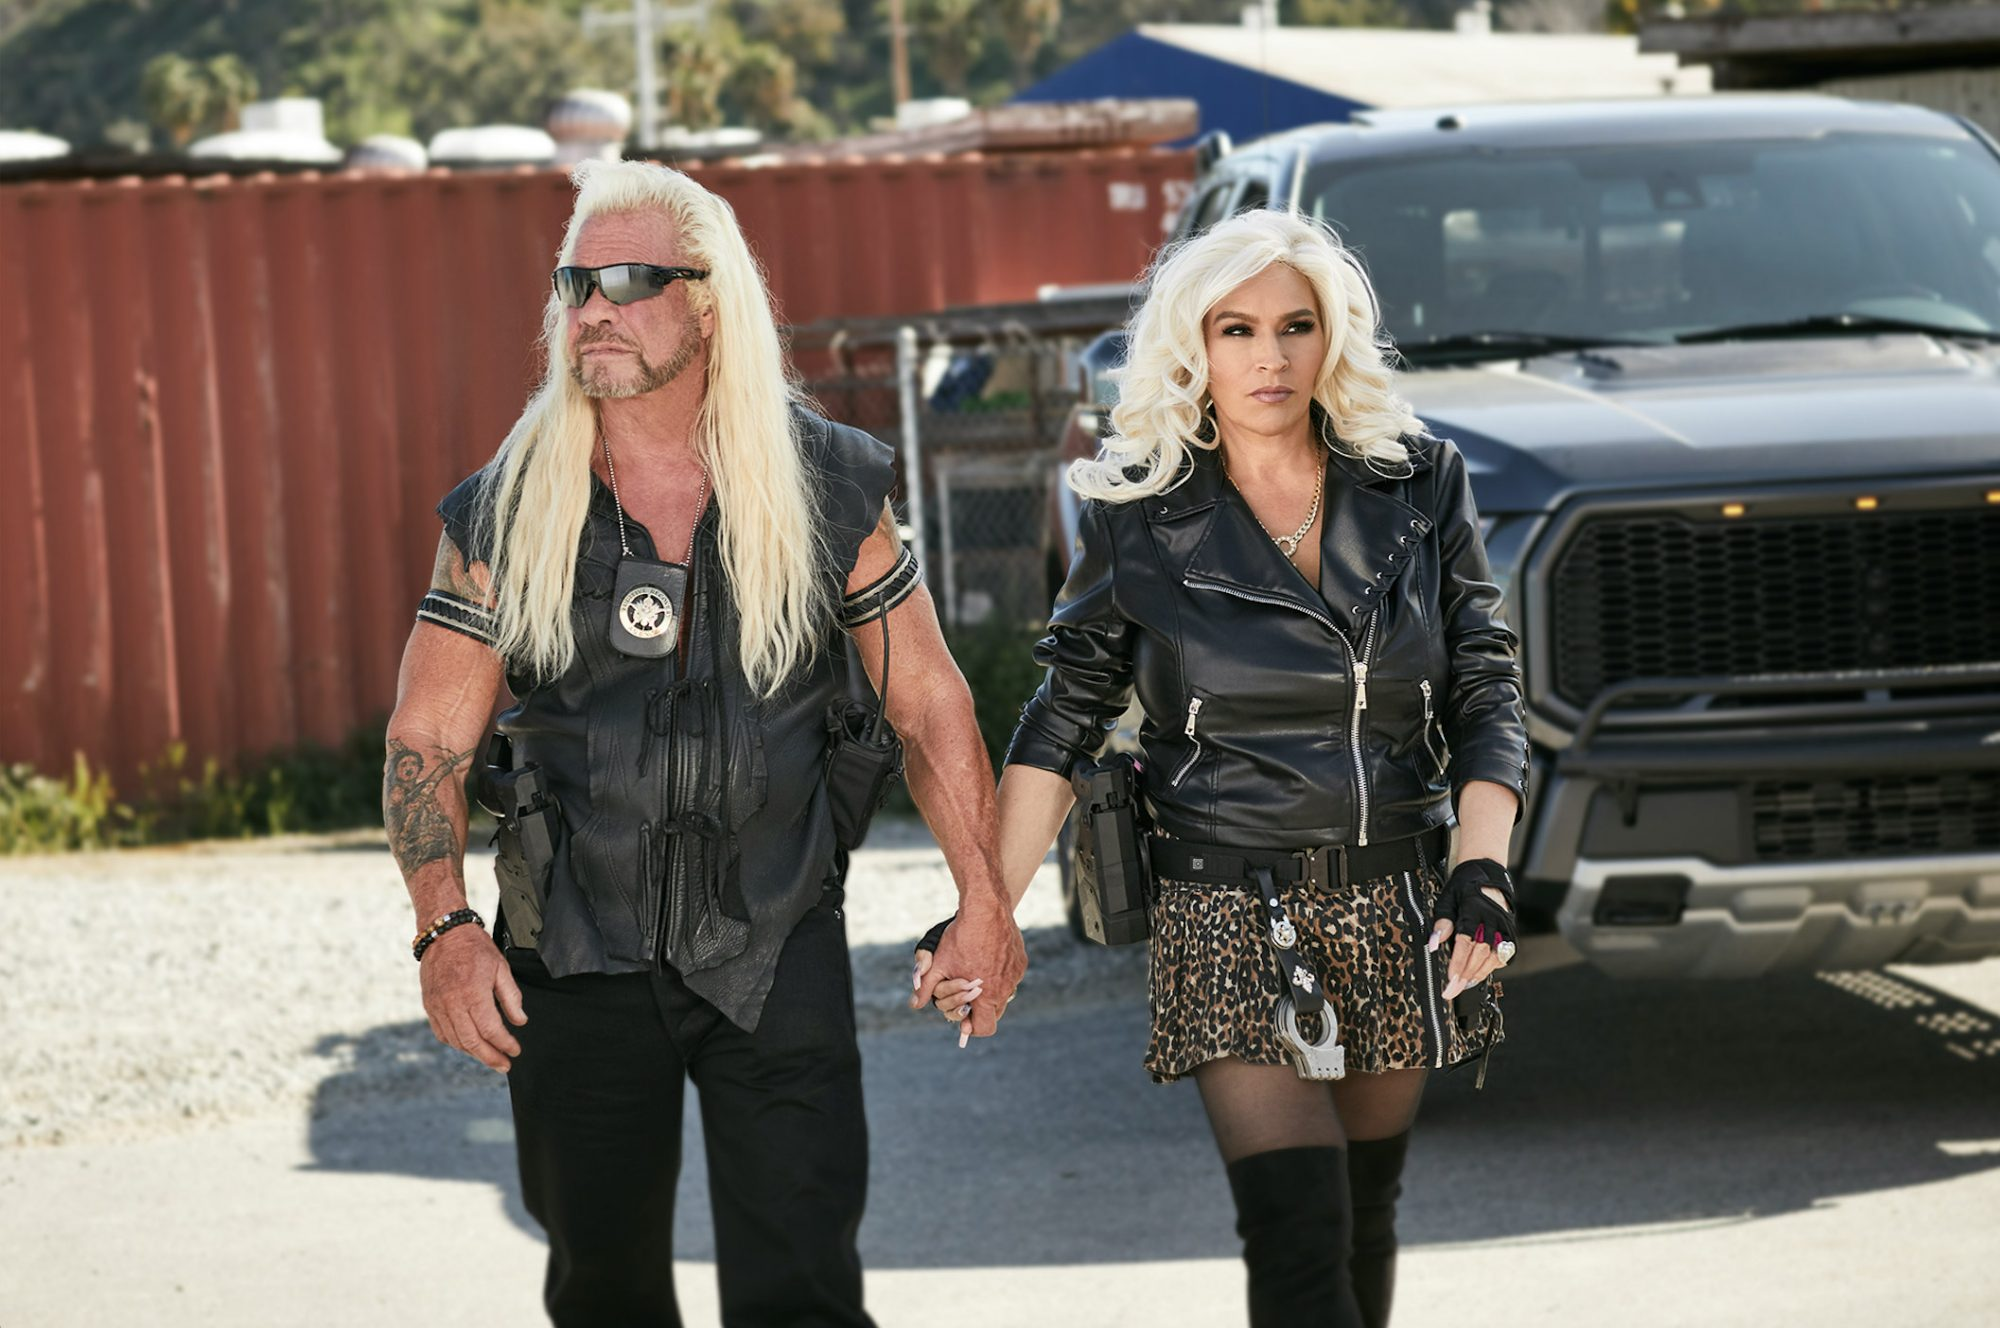 Dog the Bounty Hunter is Back with a New Series